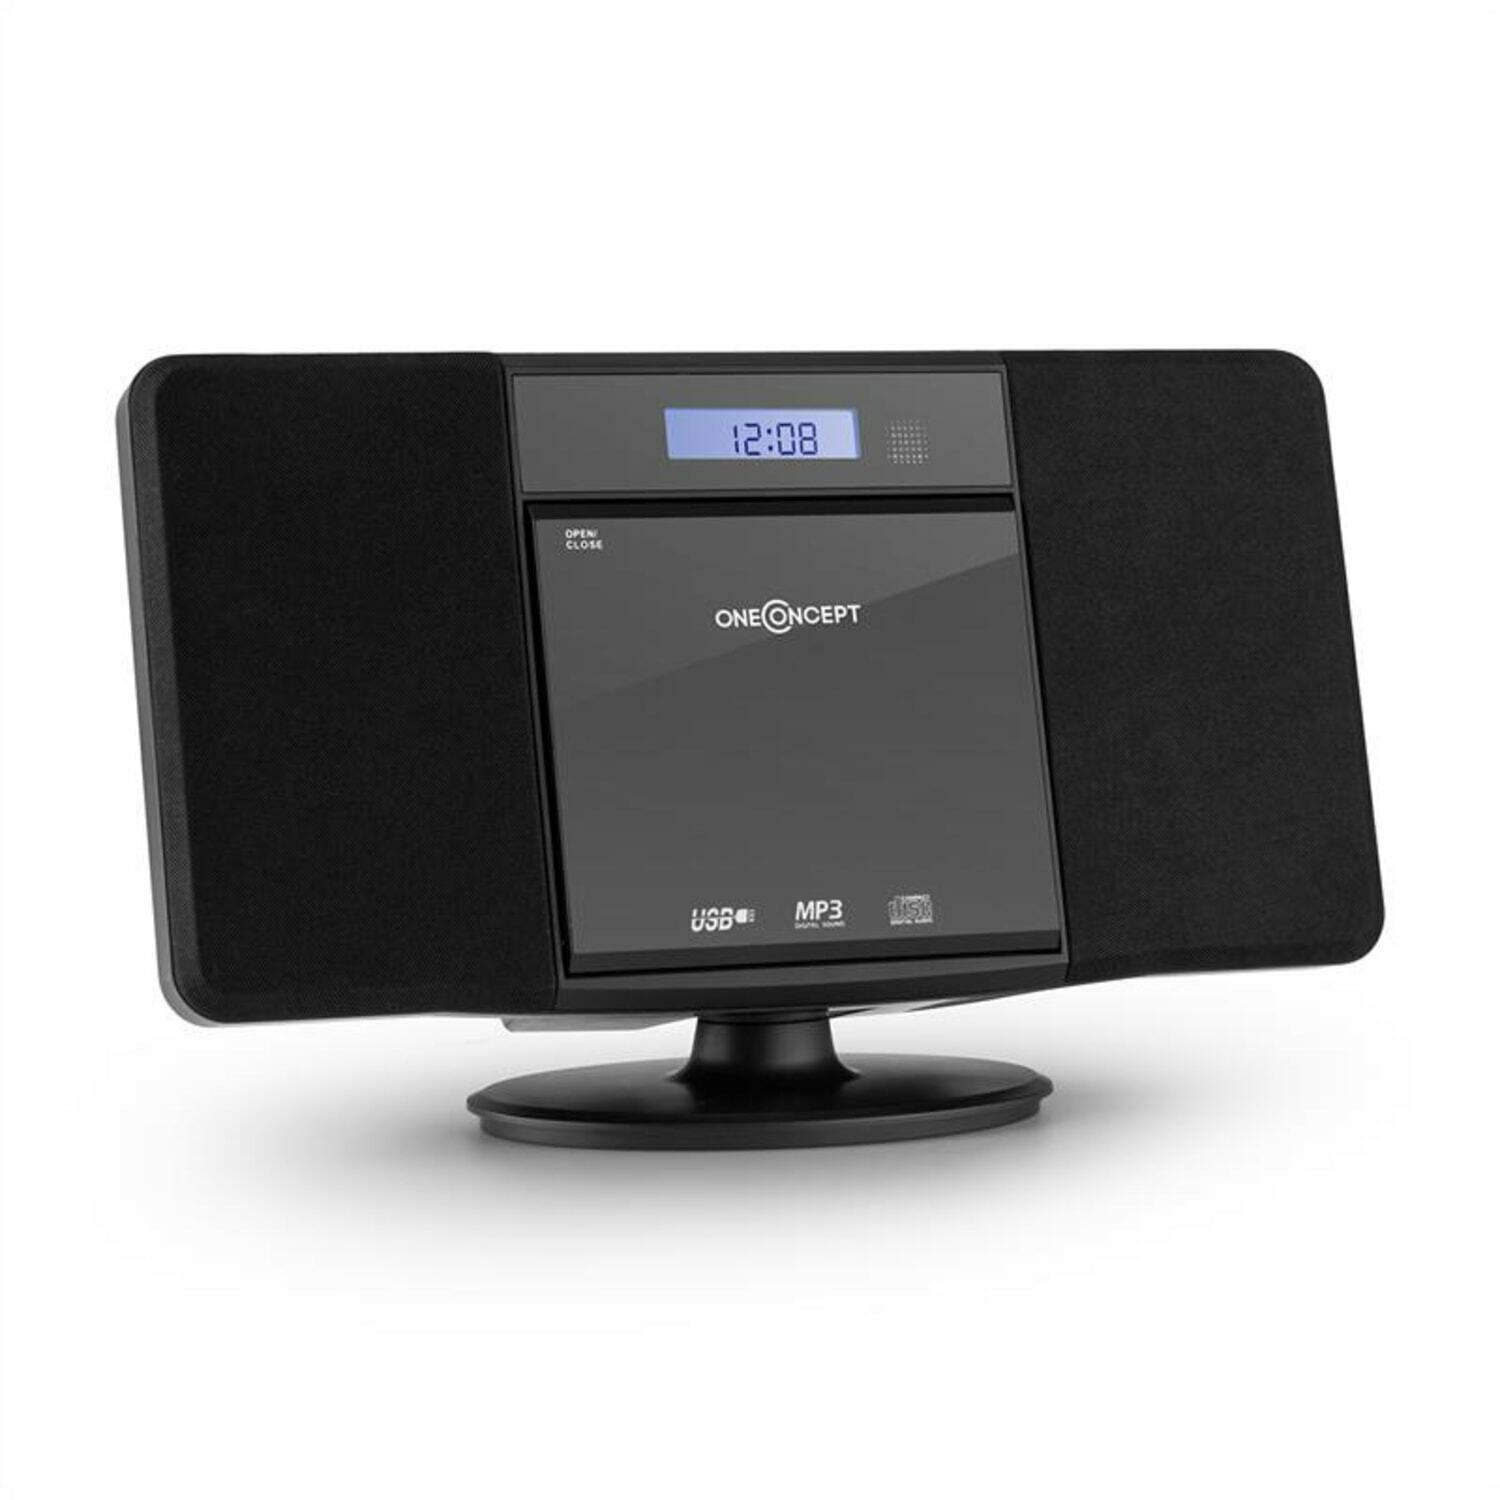 stereo anlage kompakt cd player wandmontage bluetooth. Black Bedroom Furniture Sets. Home Design Ideas